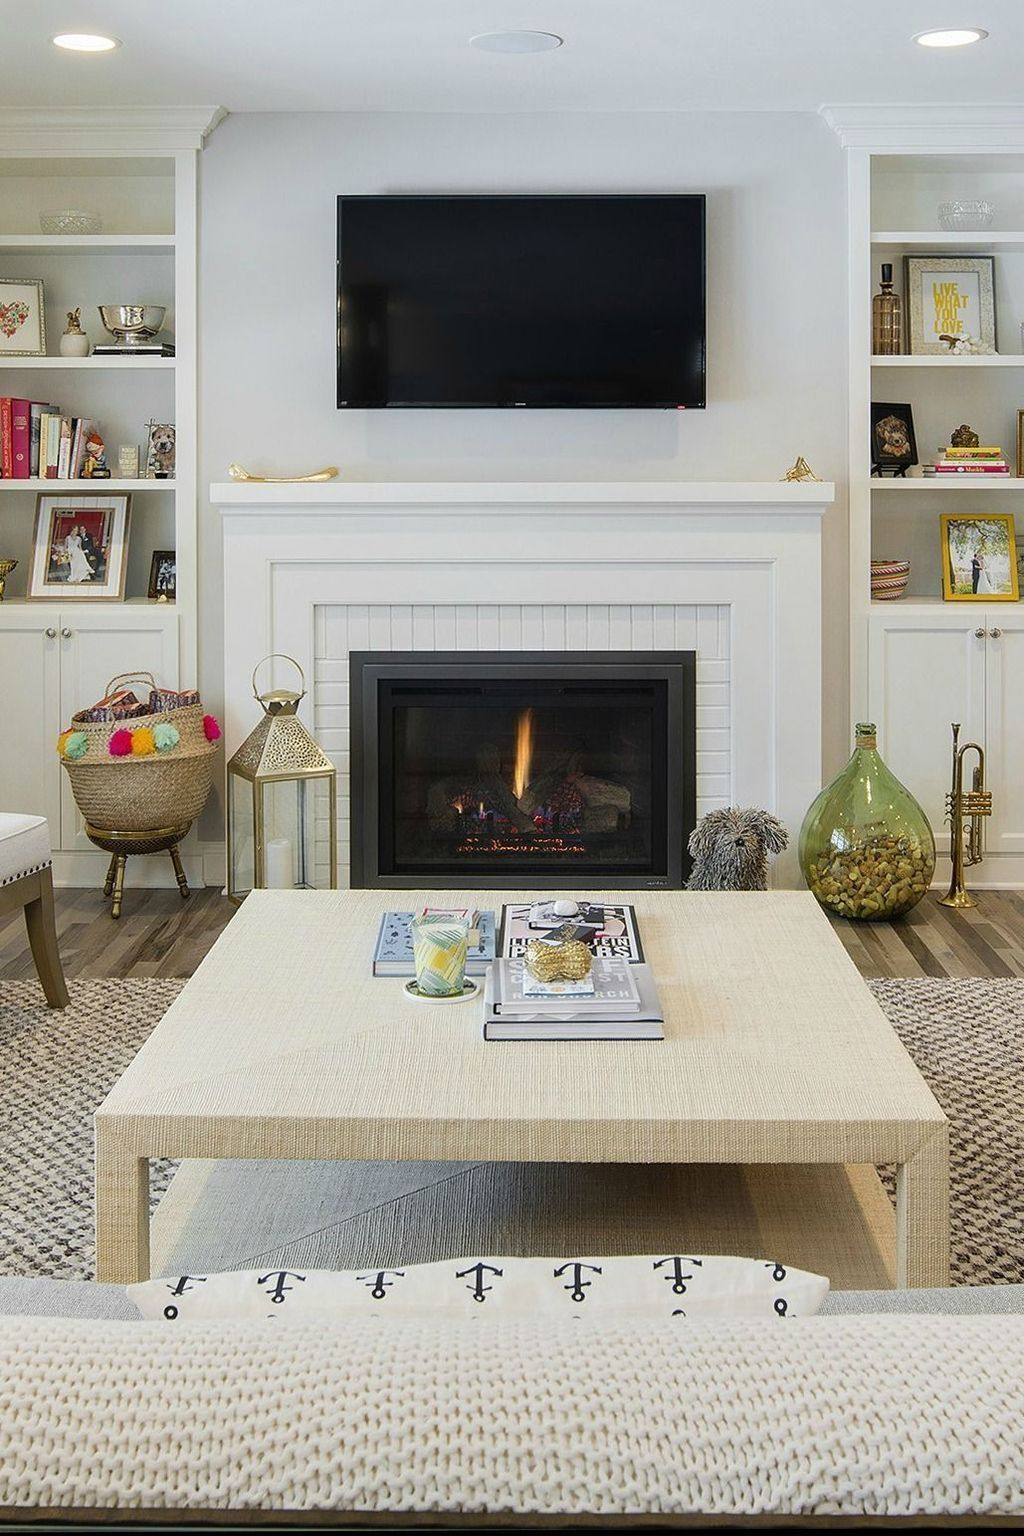 Most current Free of Charge Brick Fireplace with tv above ...